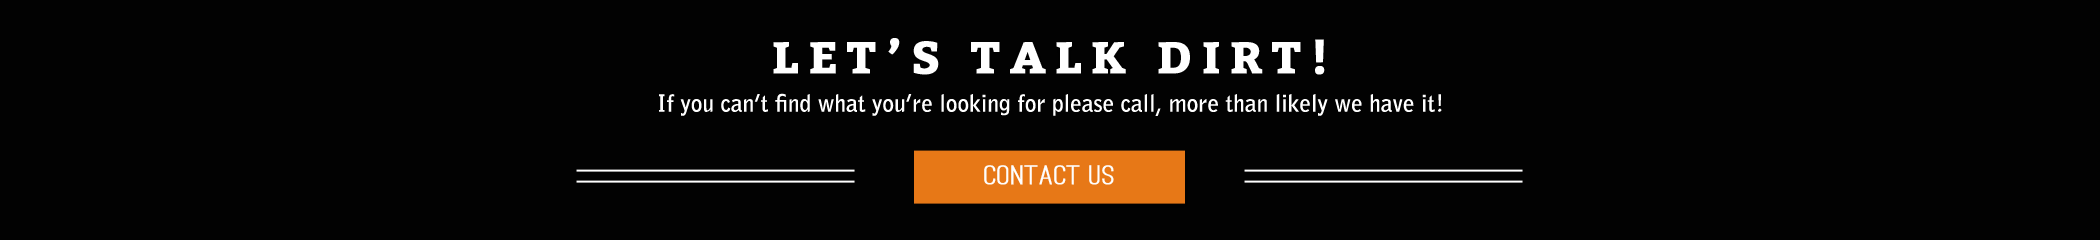 Lets talk dirt - cONTACT uS